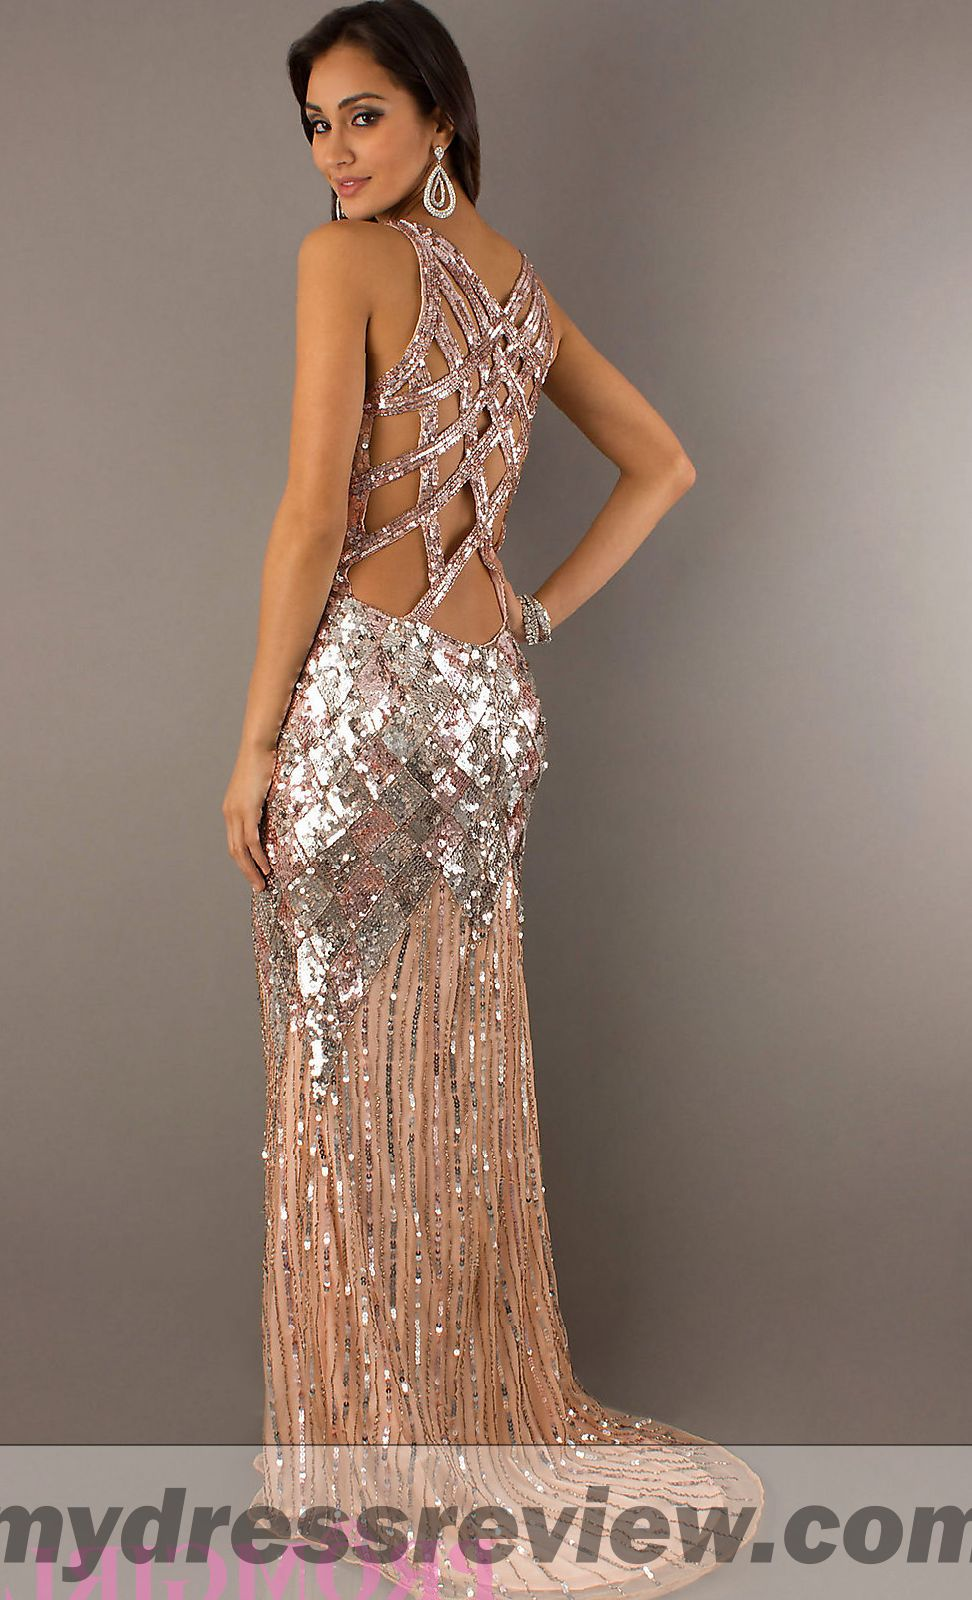 Sequins For Dresses 20 Best Ideas 2017 Mydressreview